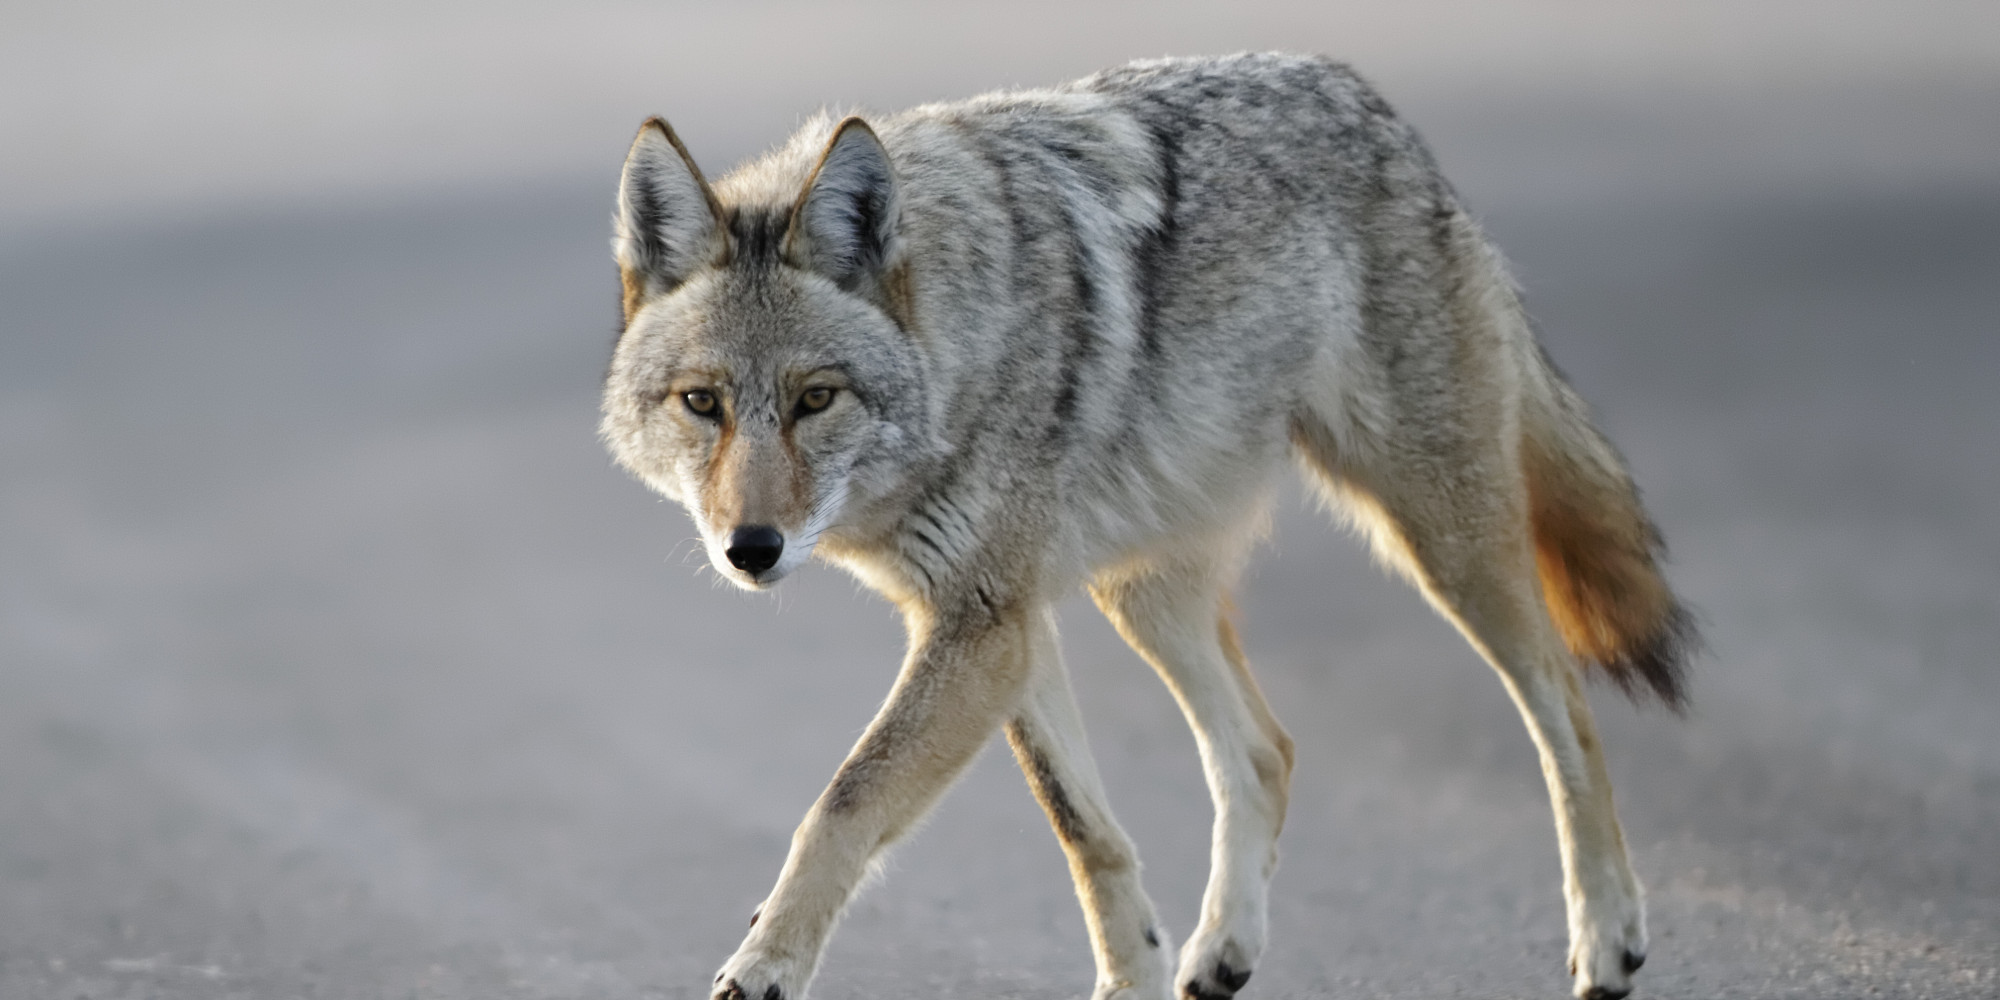 Emeil Hawkins, 3-Year-Old Chicago Boy, Attacked By Coyote ...